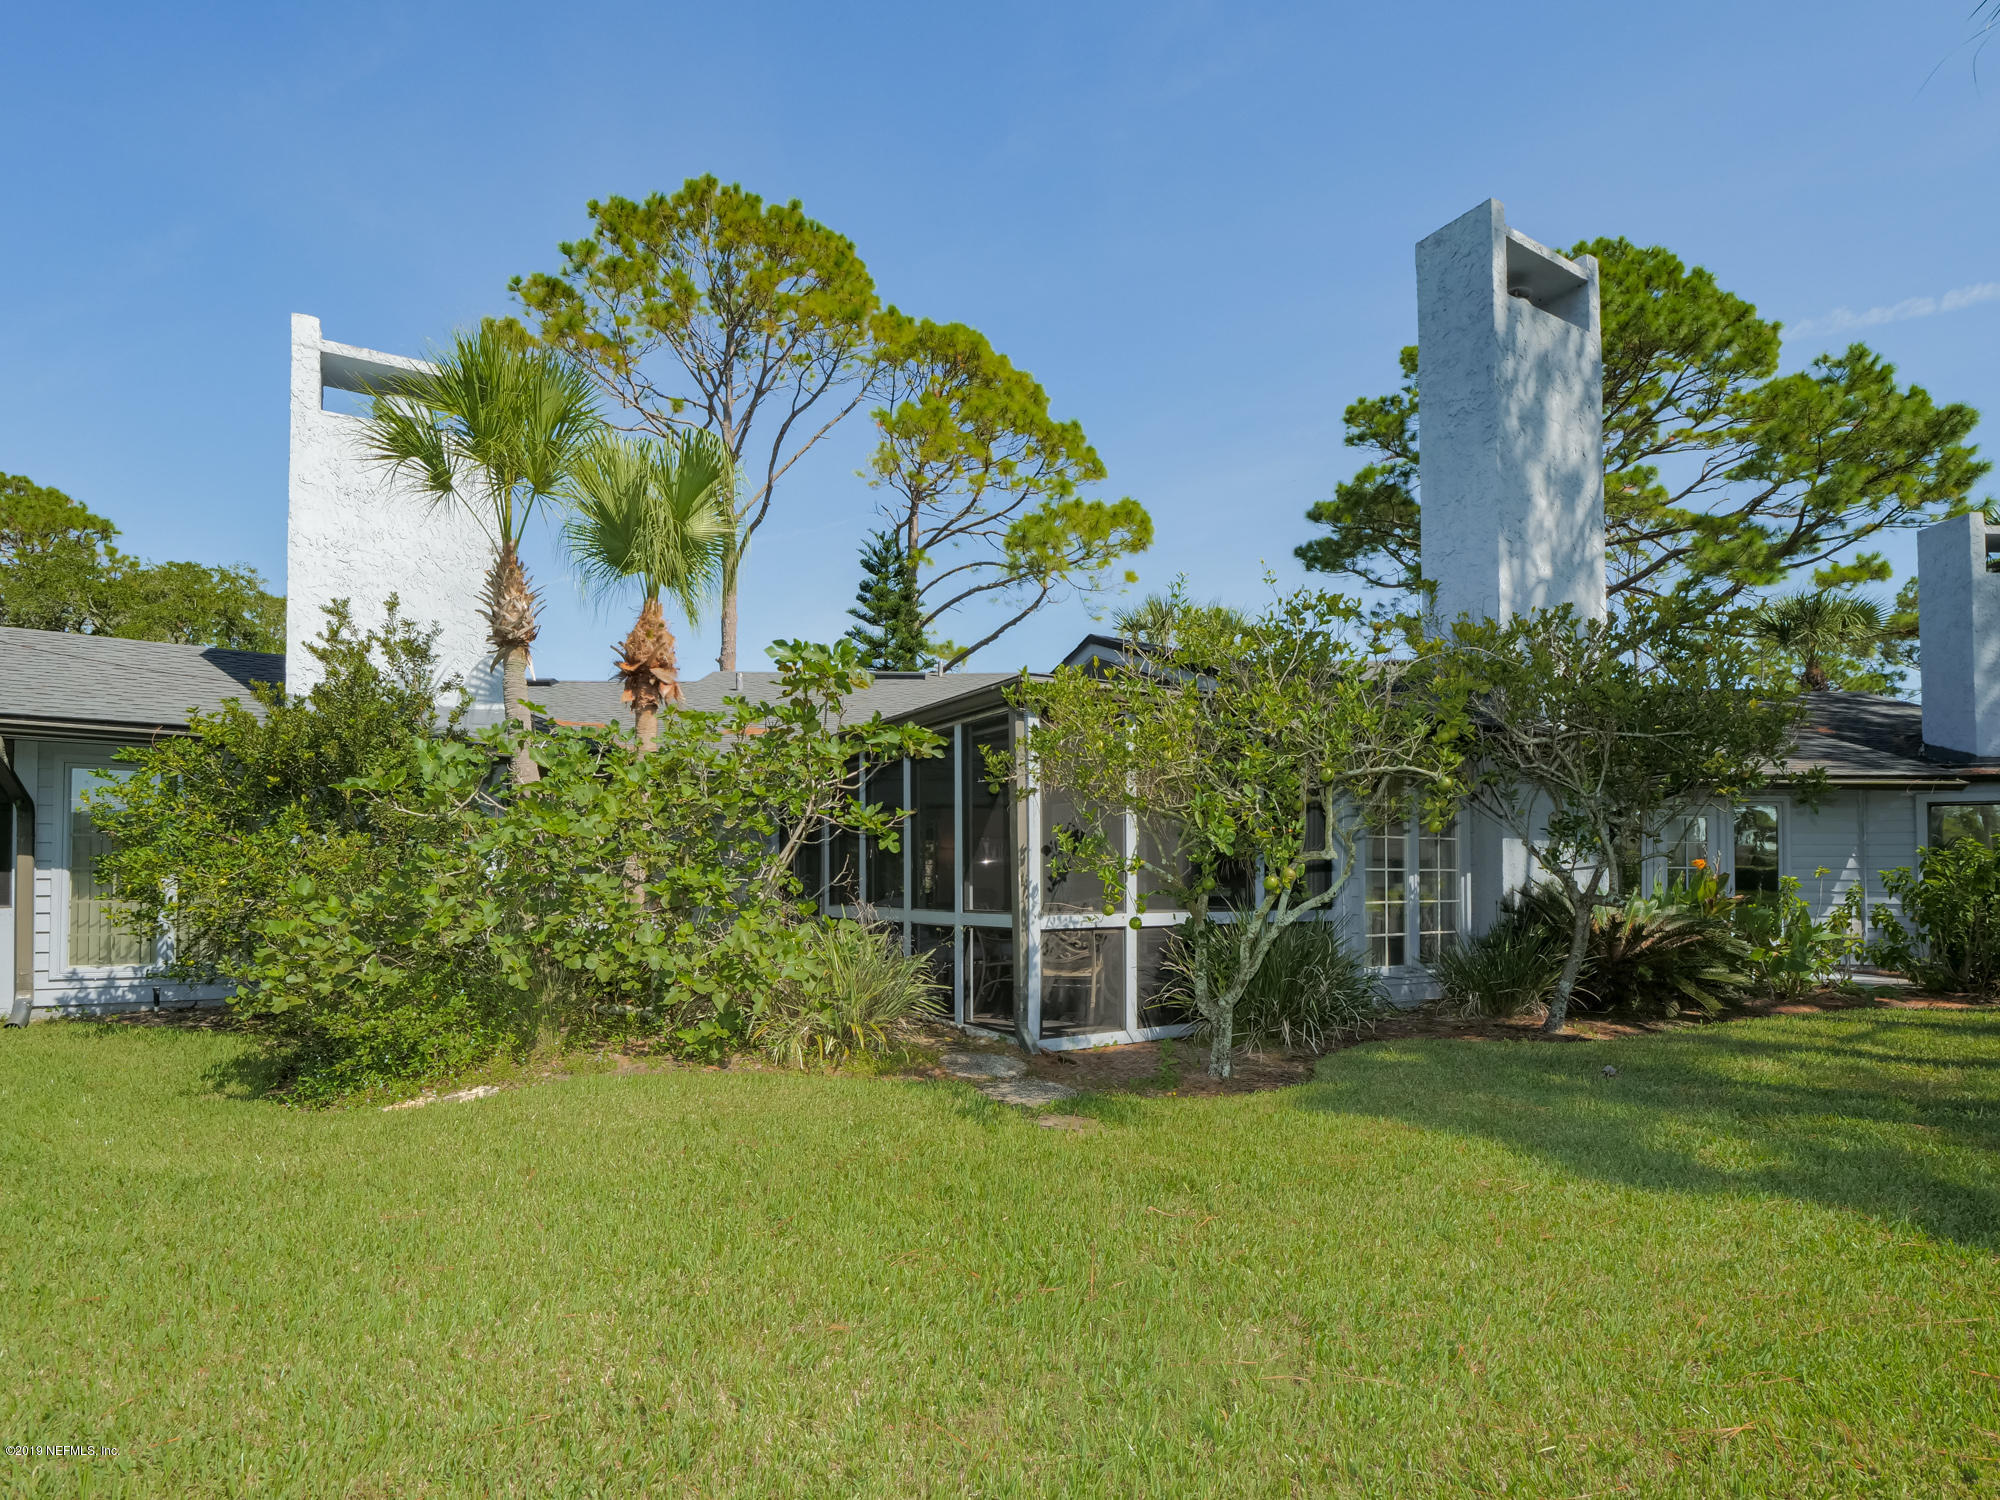 305 QUAIL POINTE- PONTE VEDRA BEACH- FLORIDA 32082, 2 Bedrooms Bedrooms, ,2 BathroomsBathrooms,Condo,For sale,QUAIL POINTE,1022287